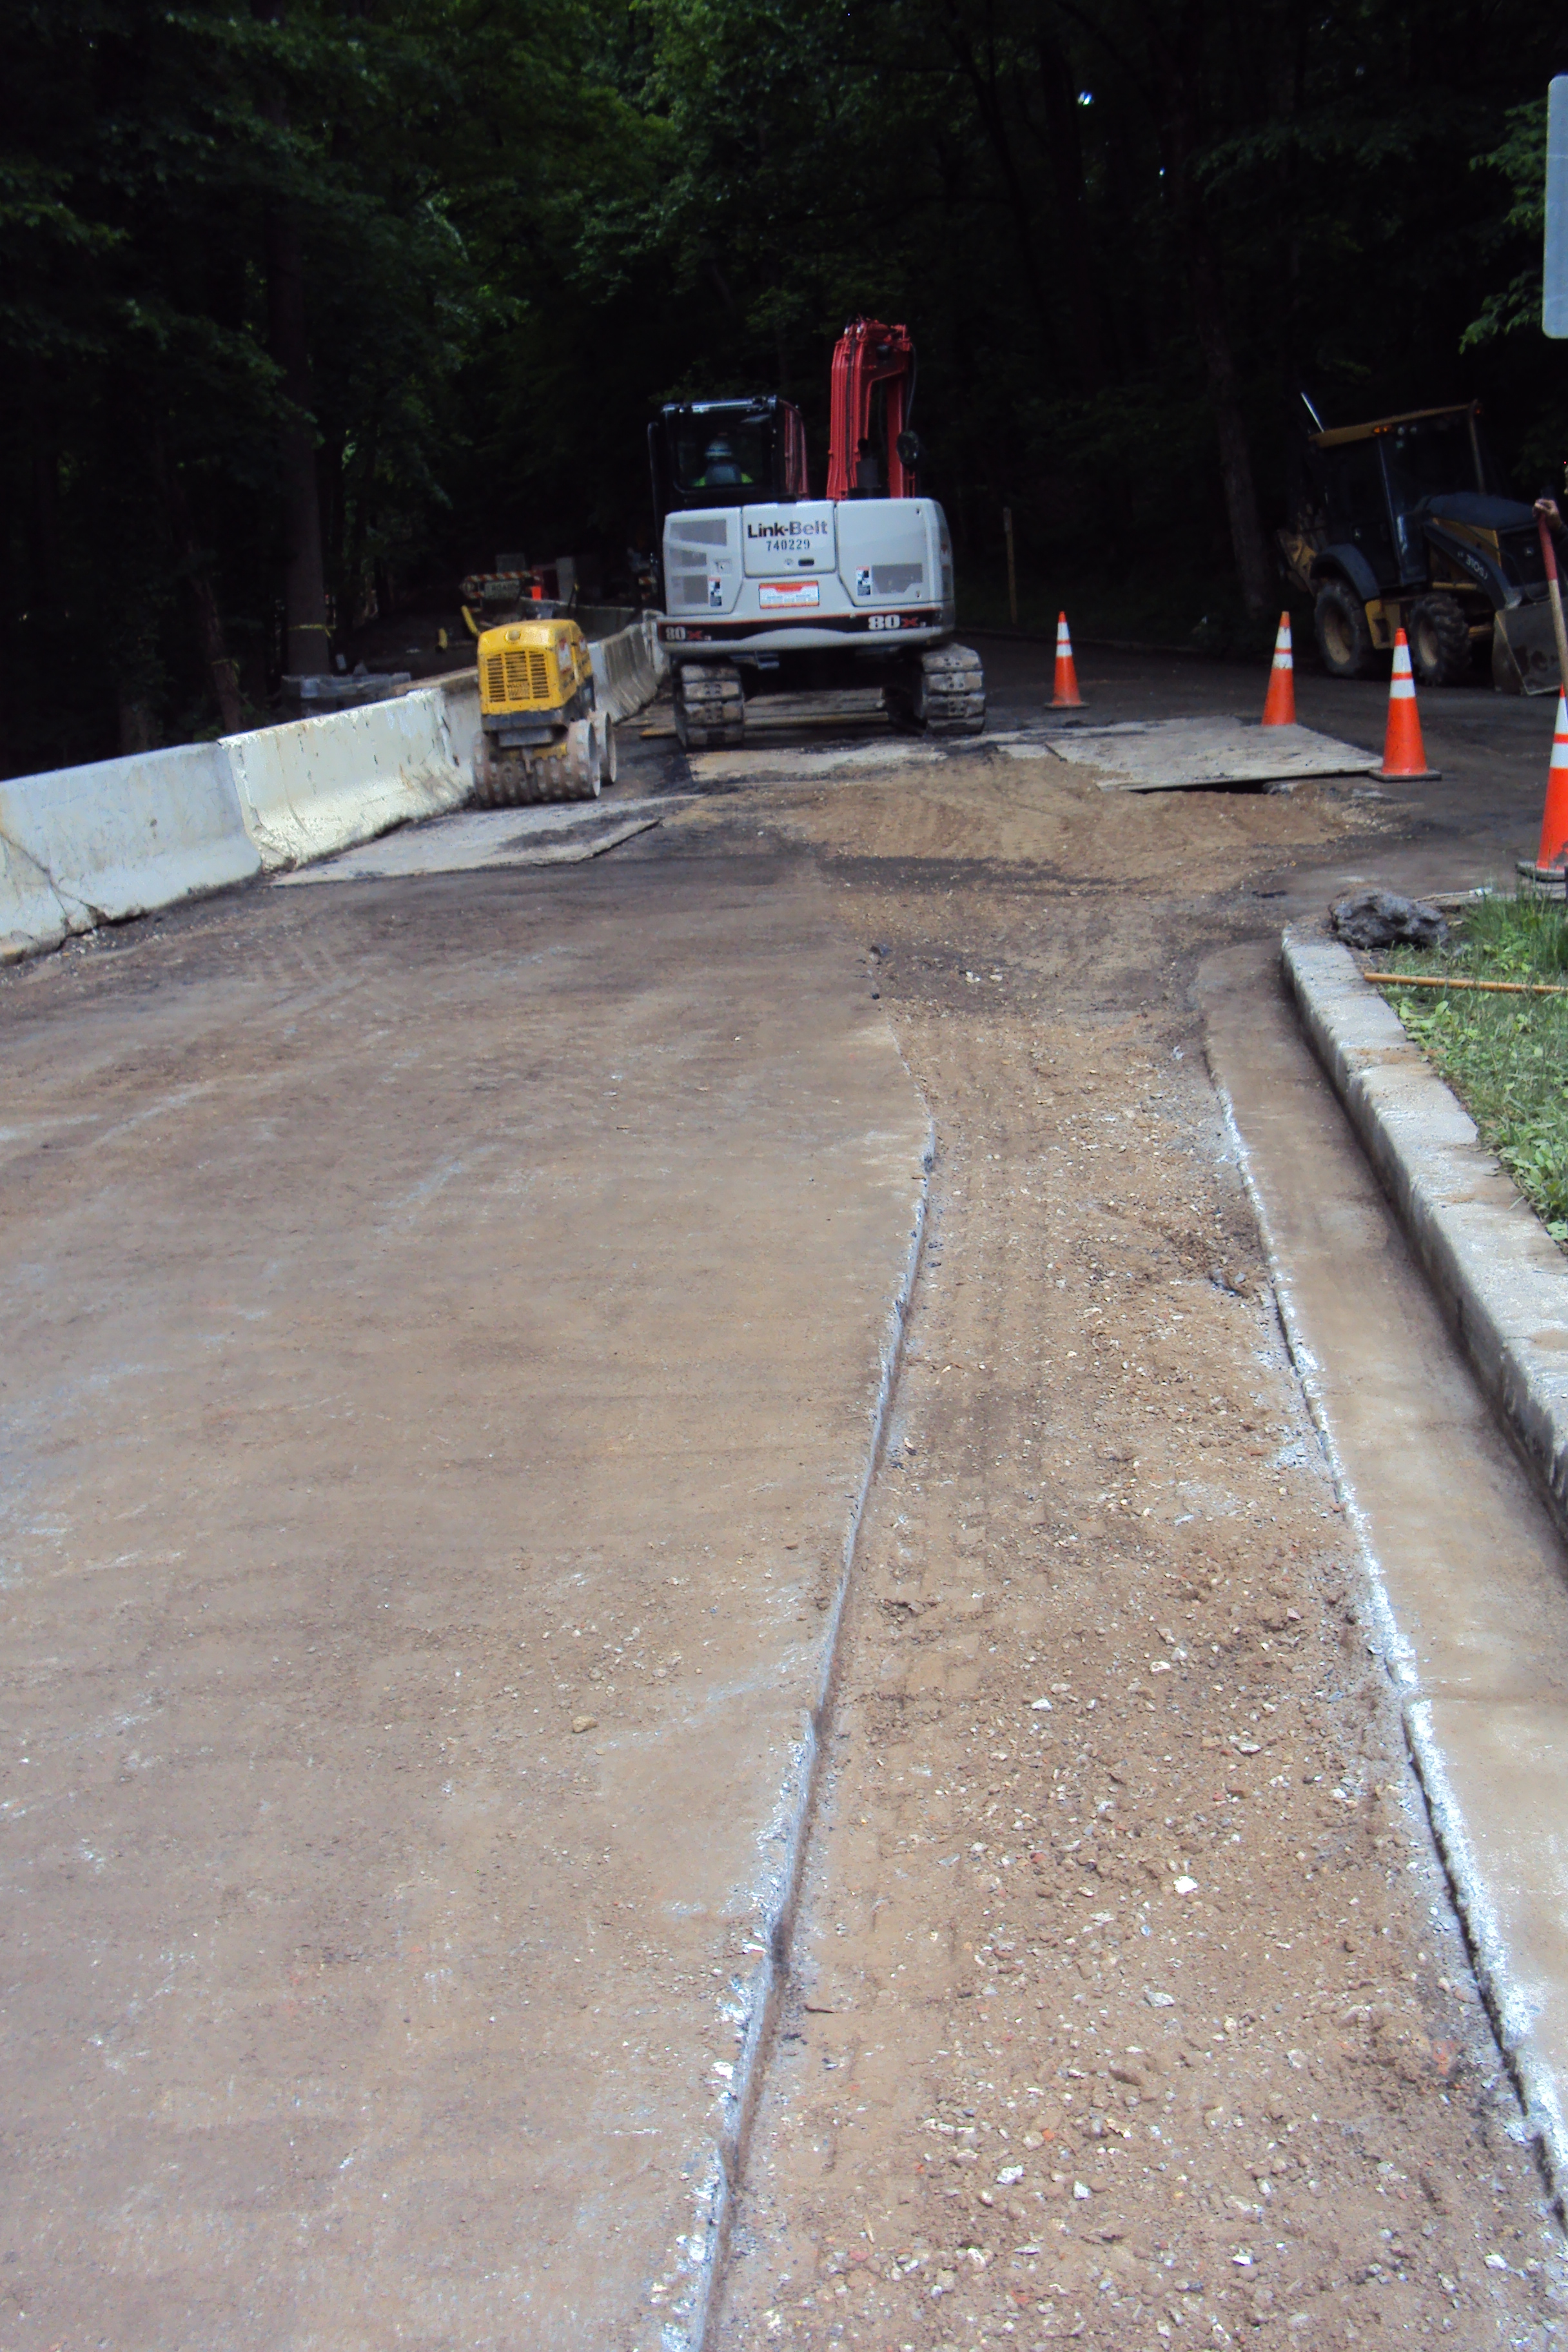 Sawcutting the existing roadway to prepare for trenching